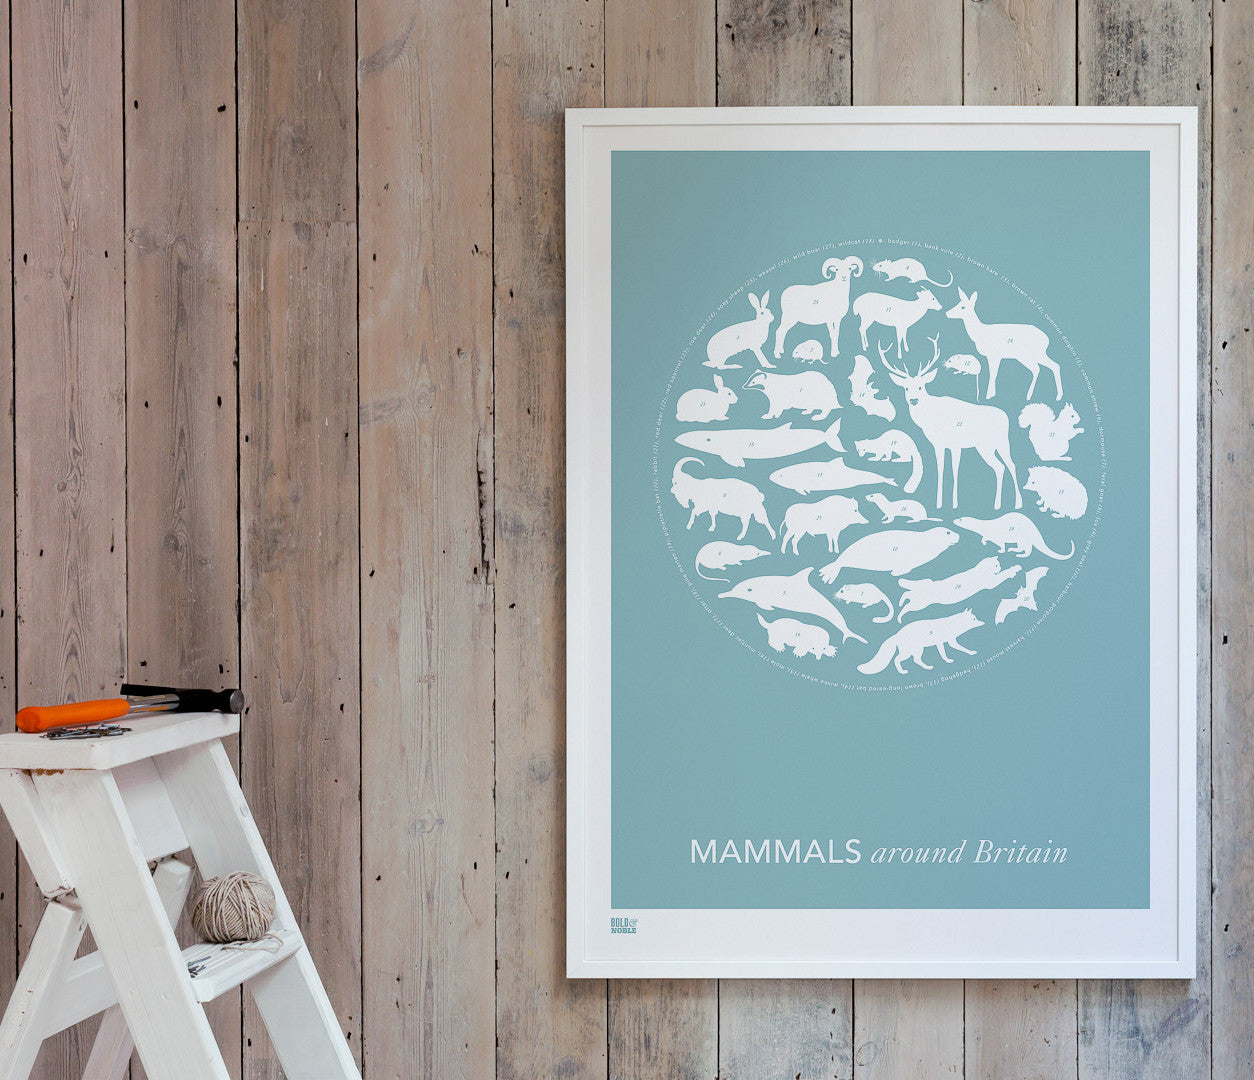 Wall Art ideas: Economical Screen Prints, Mammals Around Britain Print in Coastal Blue